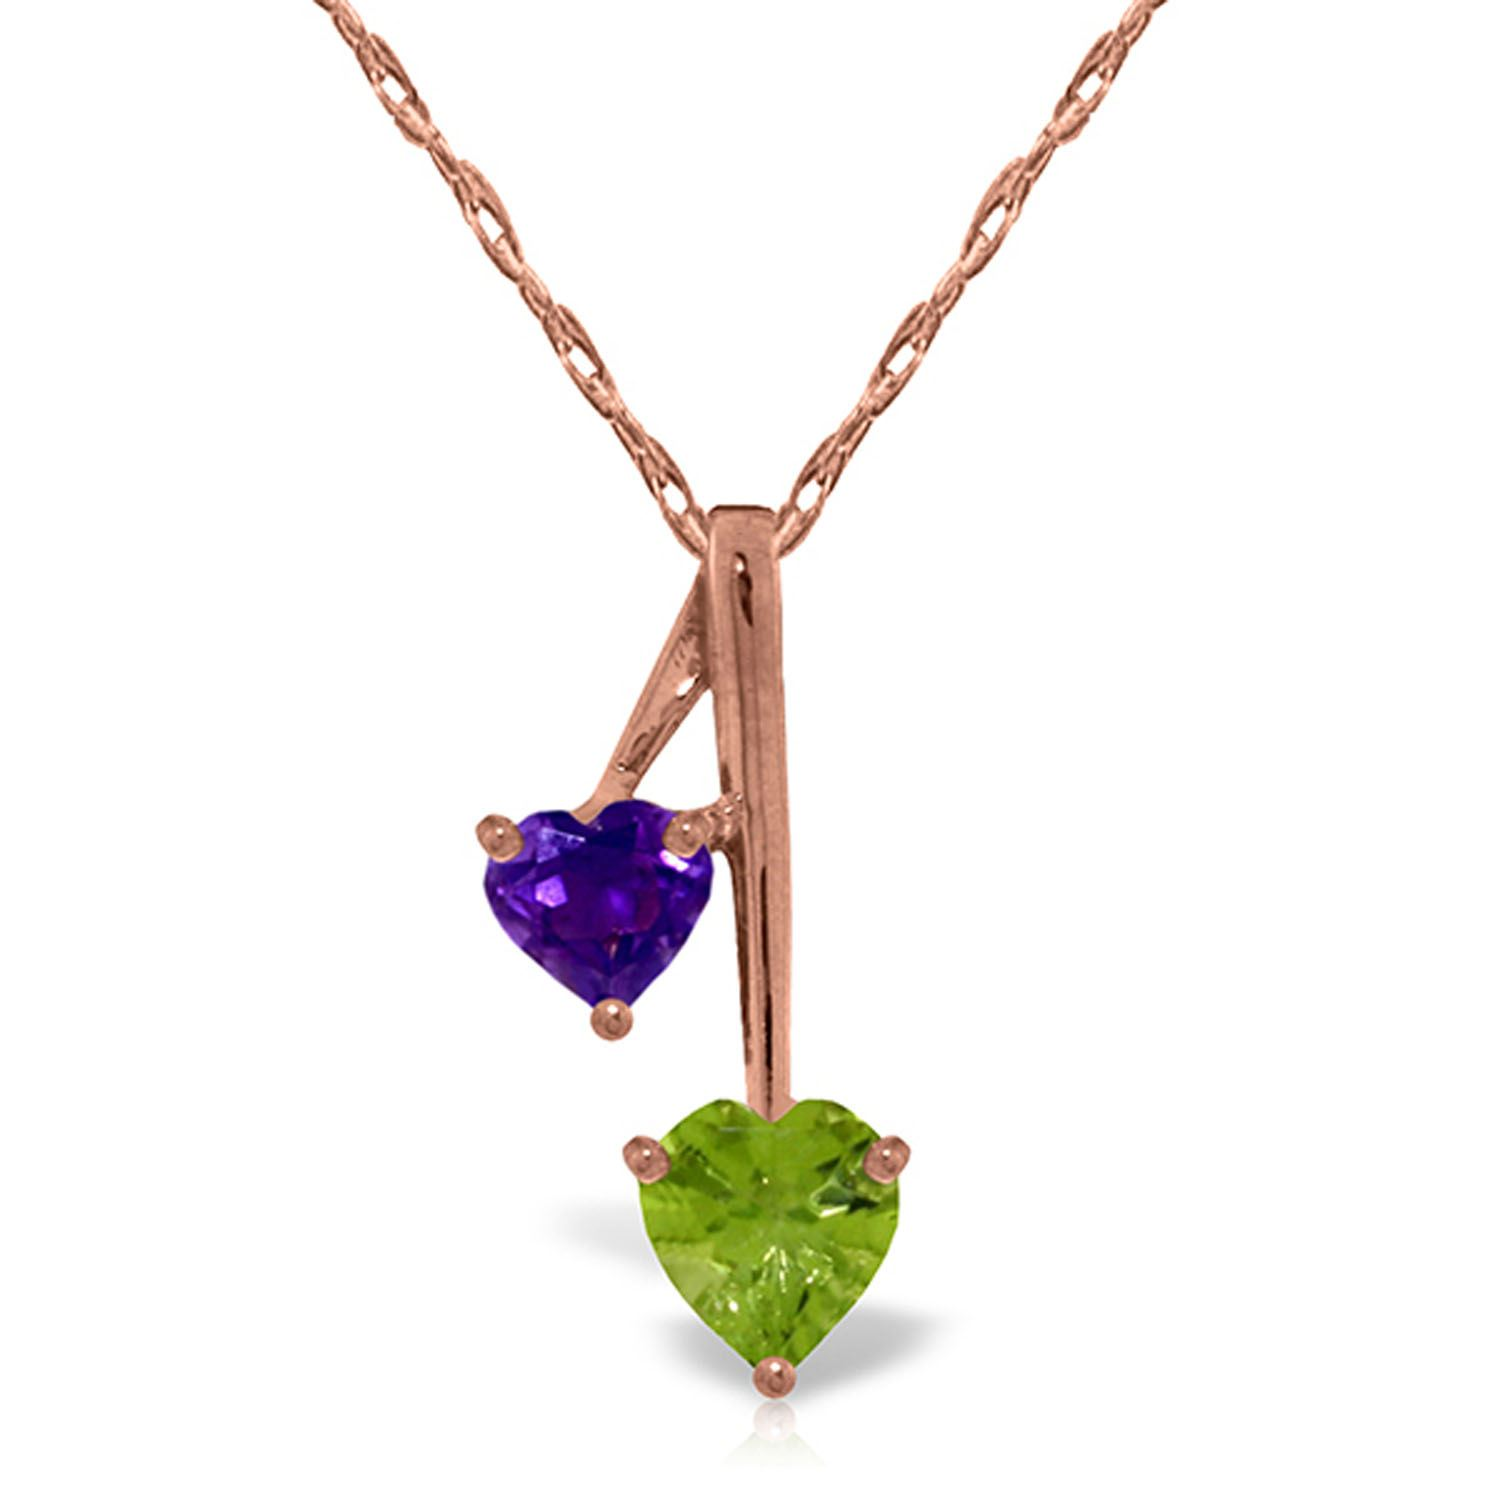 ALARRI 2 Carat 14K Solid Gold Necklace Purple Amethyst Peridot with 24 Inch Chain Length